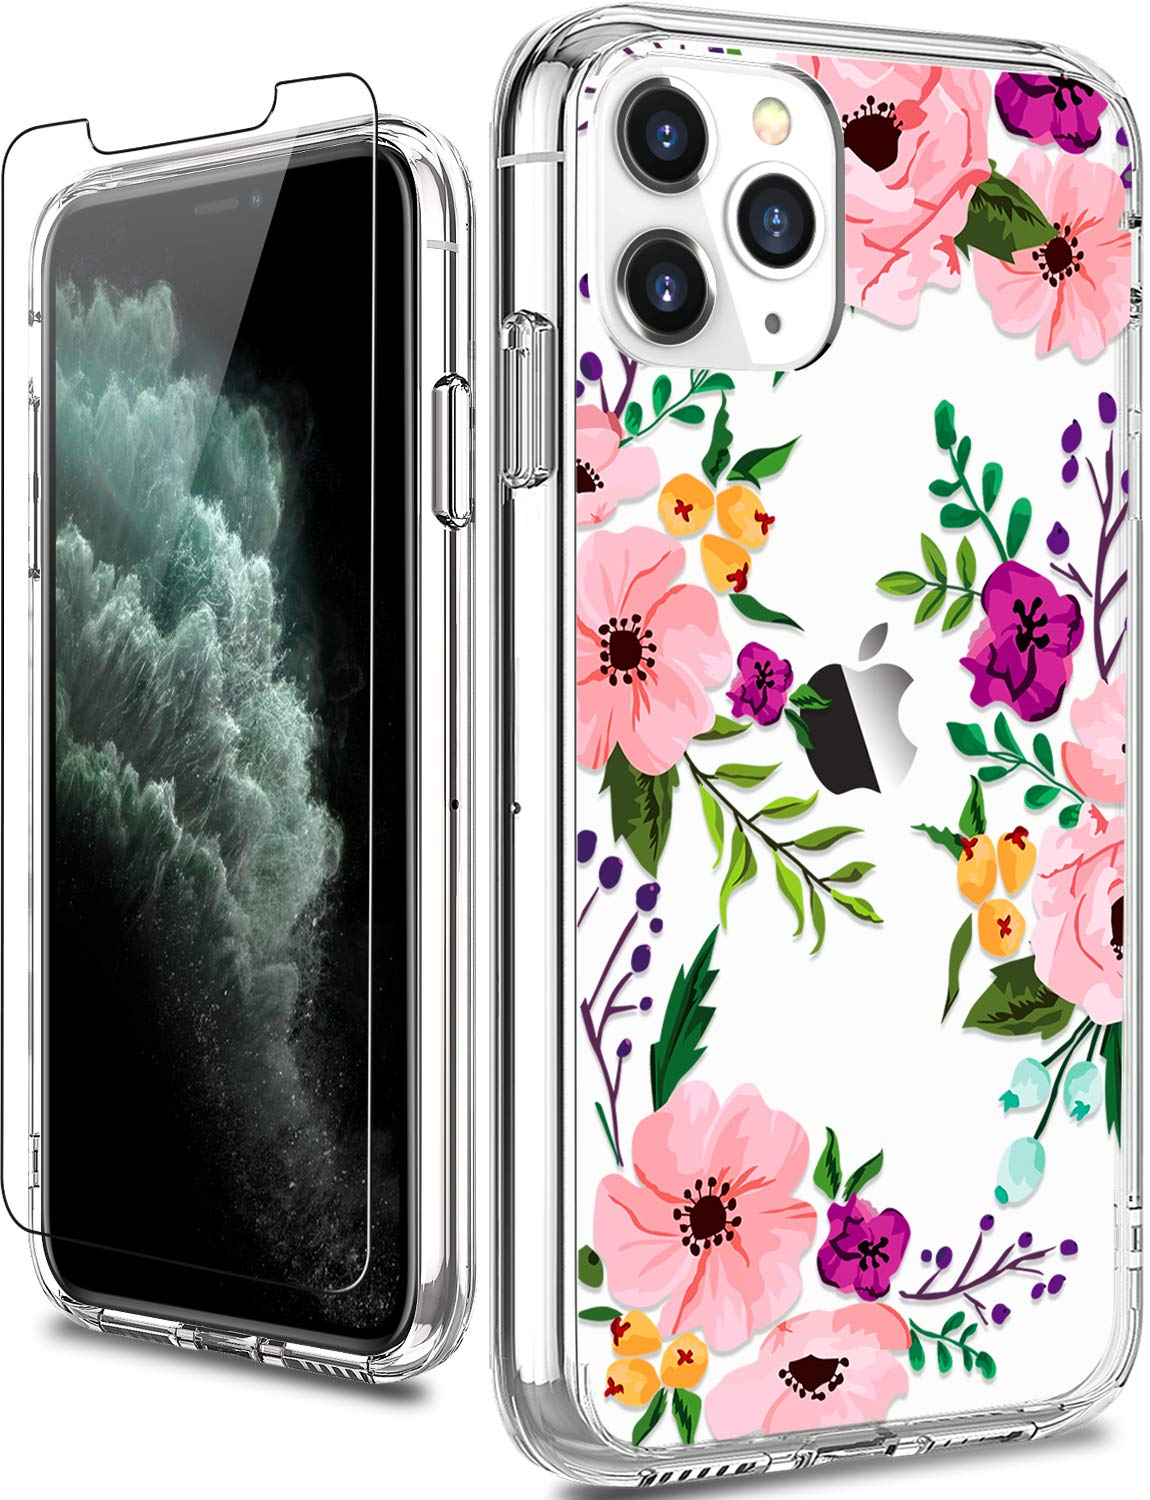 LUHOURI iPhone 11 Pro Case with Screen Protector,Cute Floral Designs on Clear Cover for Girls Women,Shockproof Scratch Resistant Slim Fit Protective Phone Case for iPhone 11 Pro 5.8 inch 2019 Pink